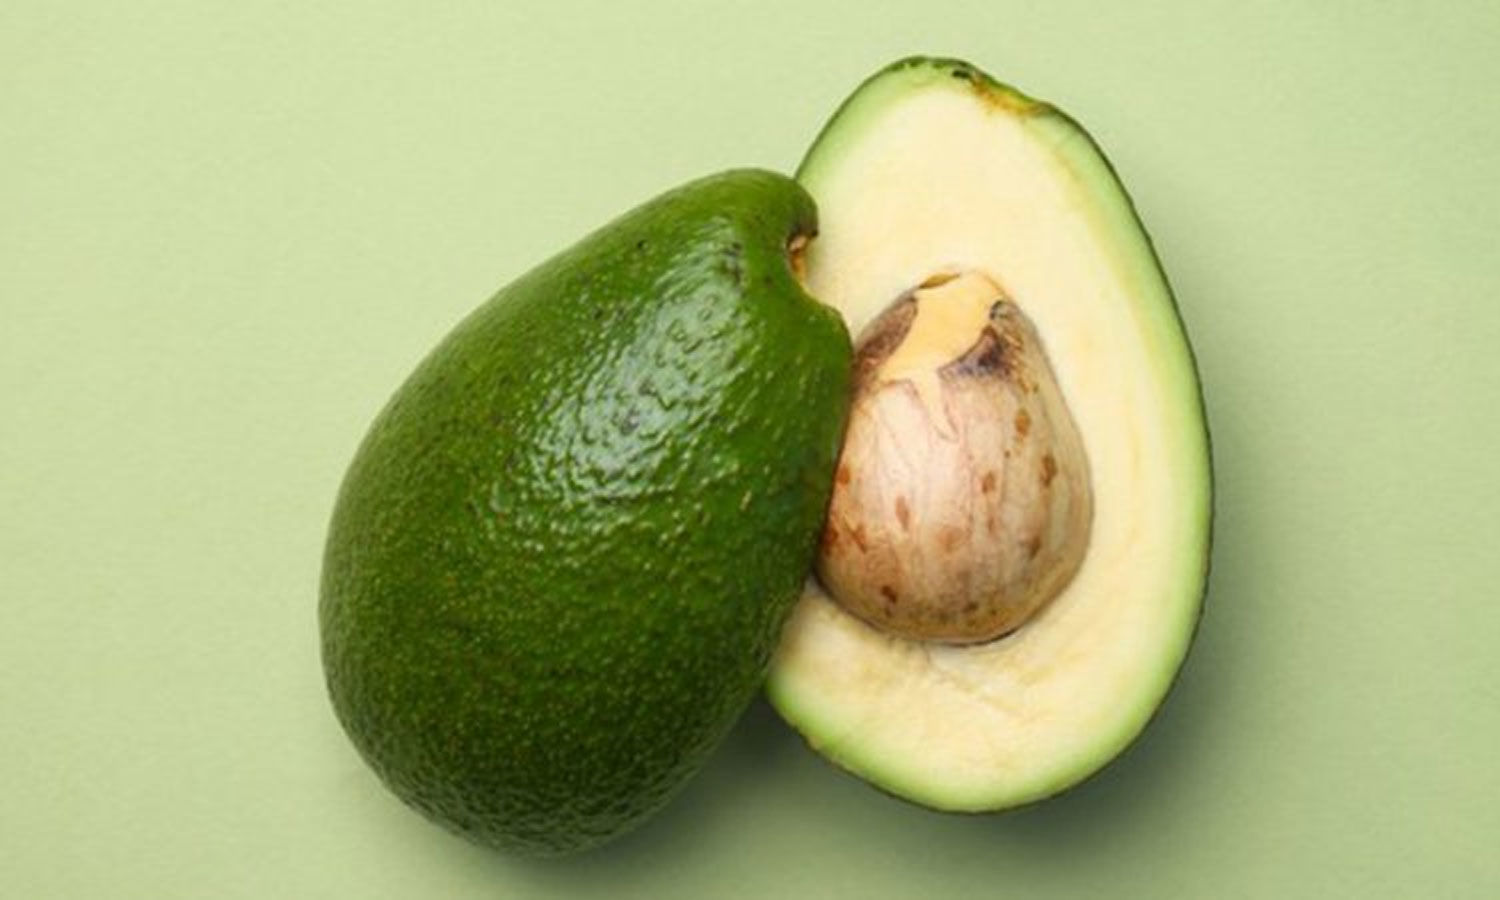 An Avacado a day may improve cognitive functions in obese adults